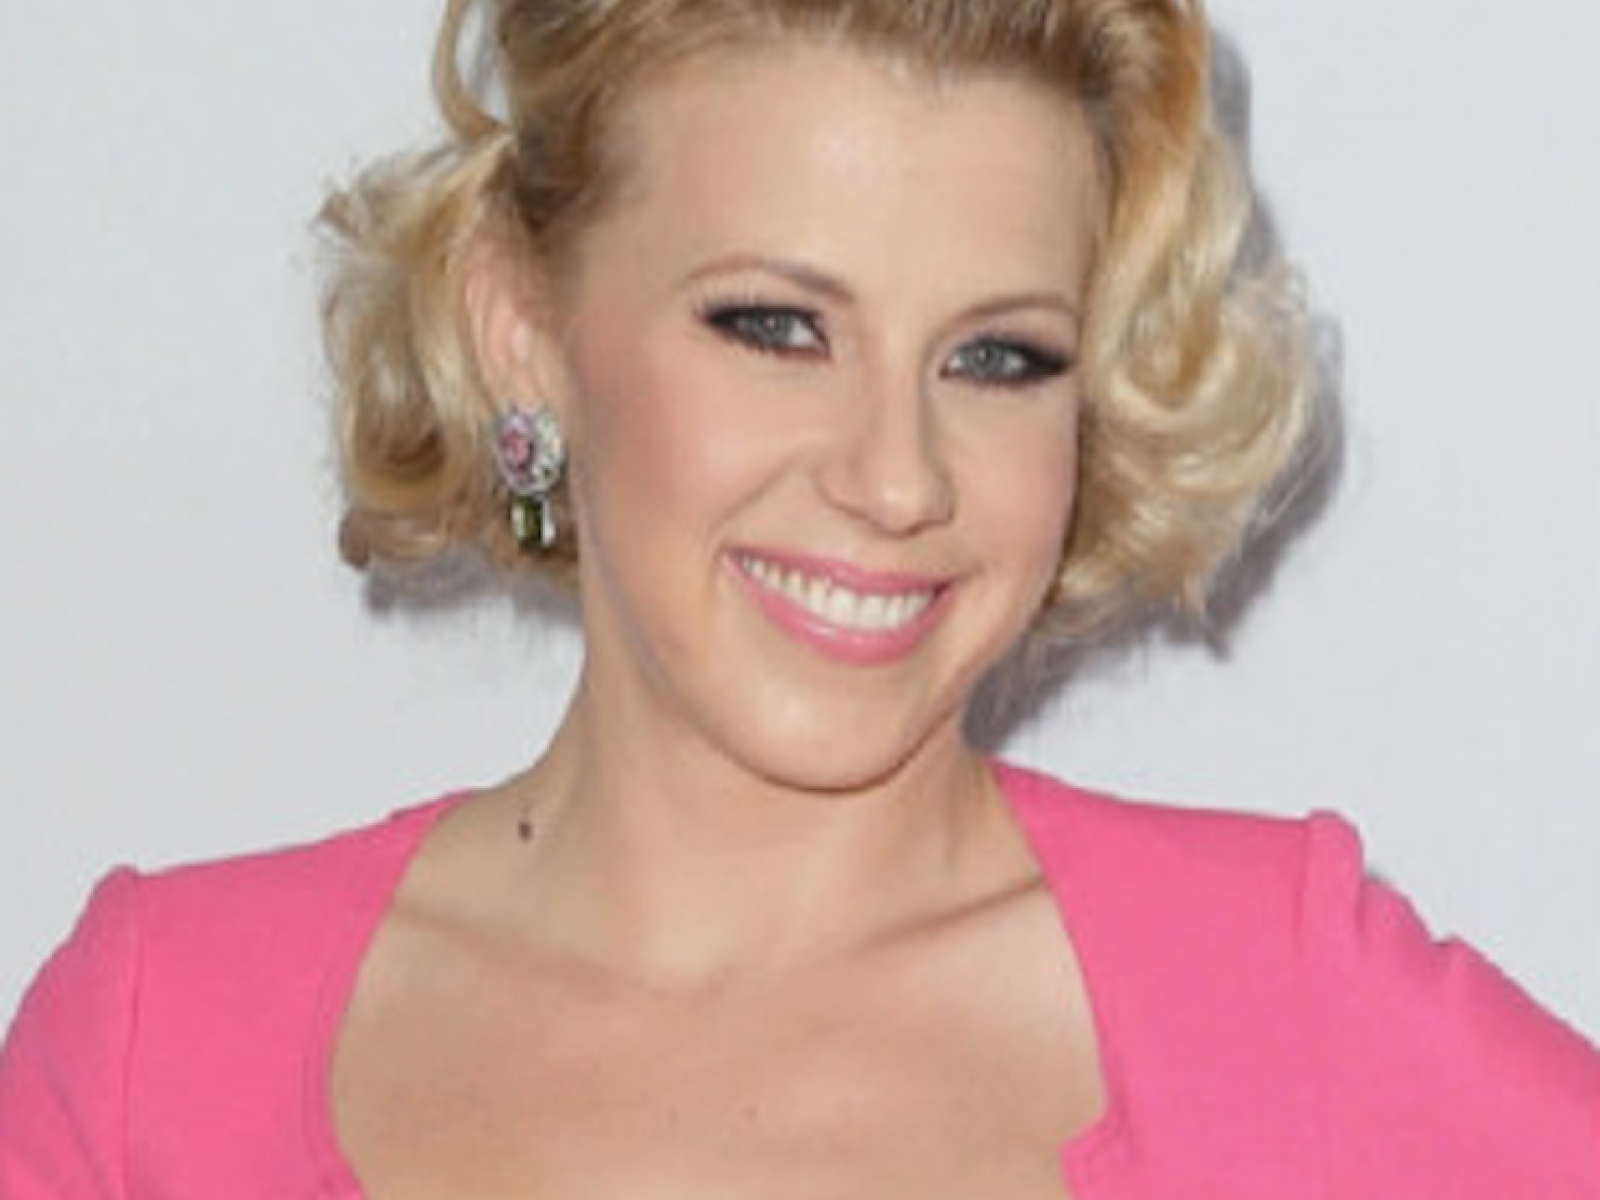 Main image for event titled 10th Annual Experience, Strength and Hope Awards Honoring TV Star Jodie Sweetin